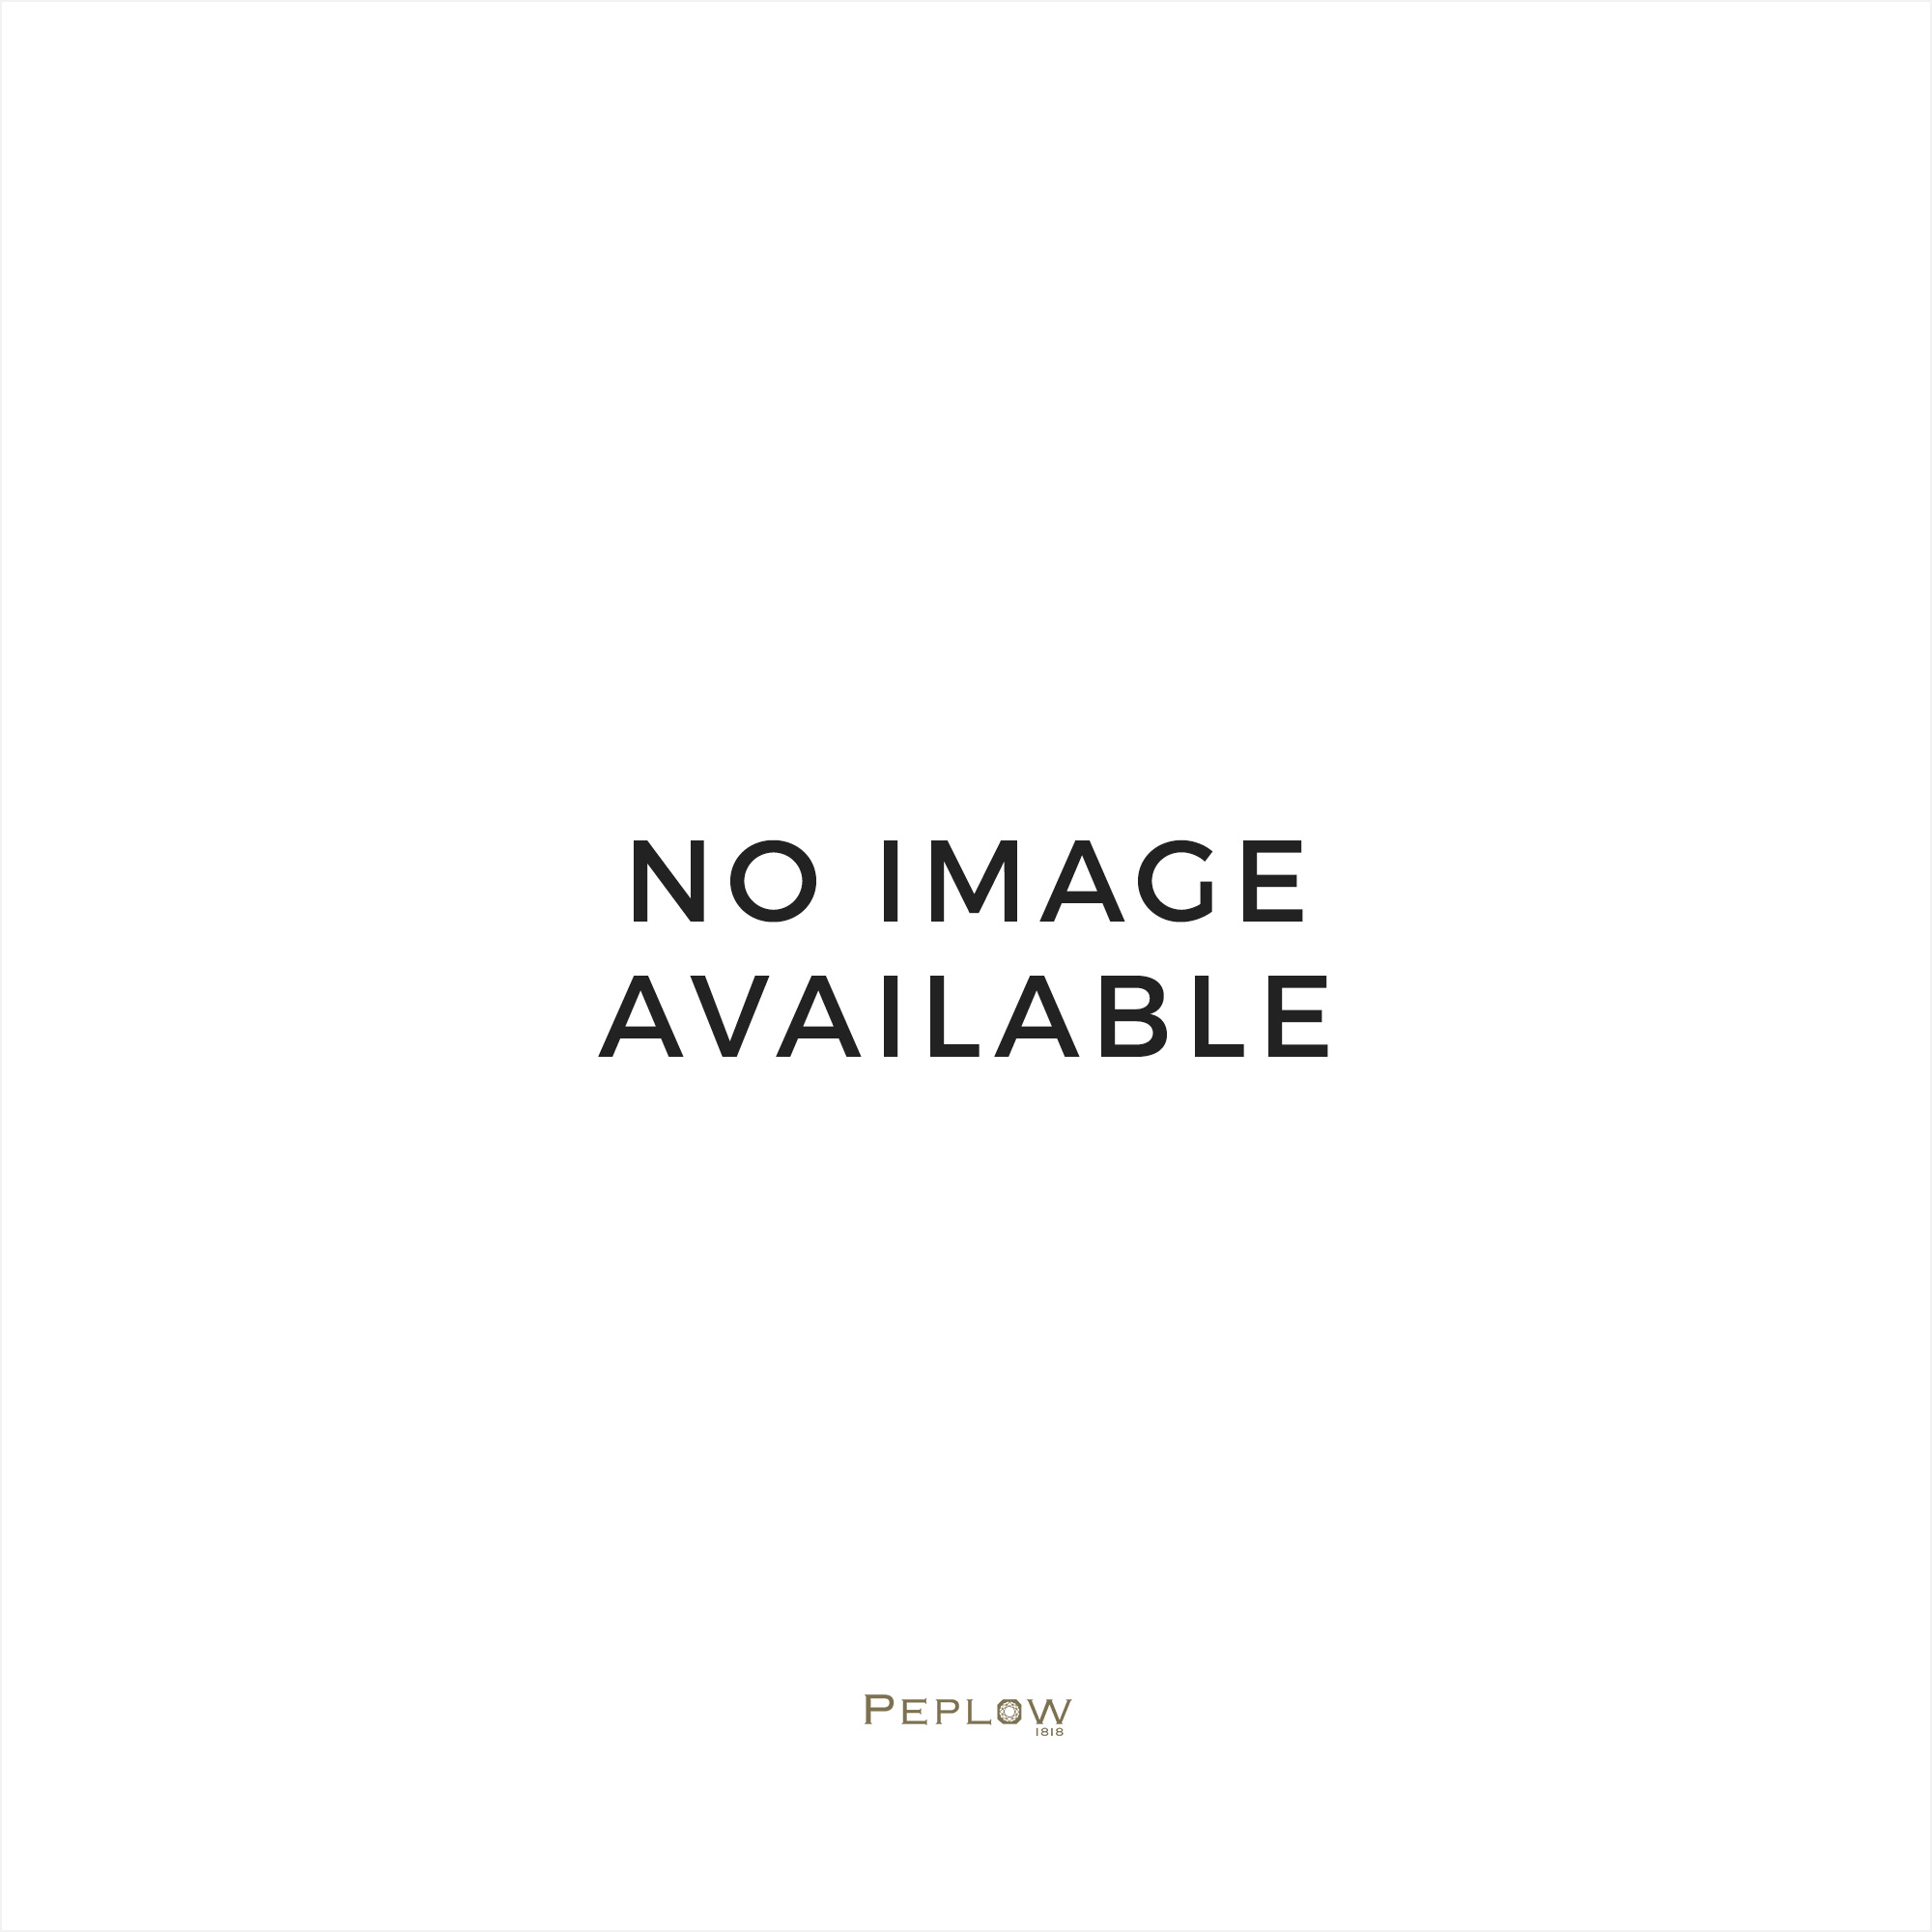 Seiko Watches Seiko Mens Two Tone White Baton Dial Watch